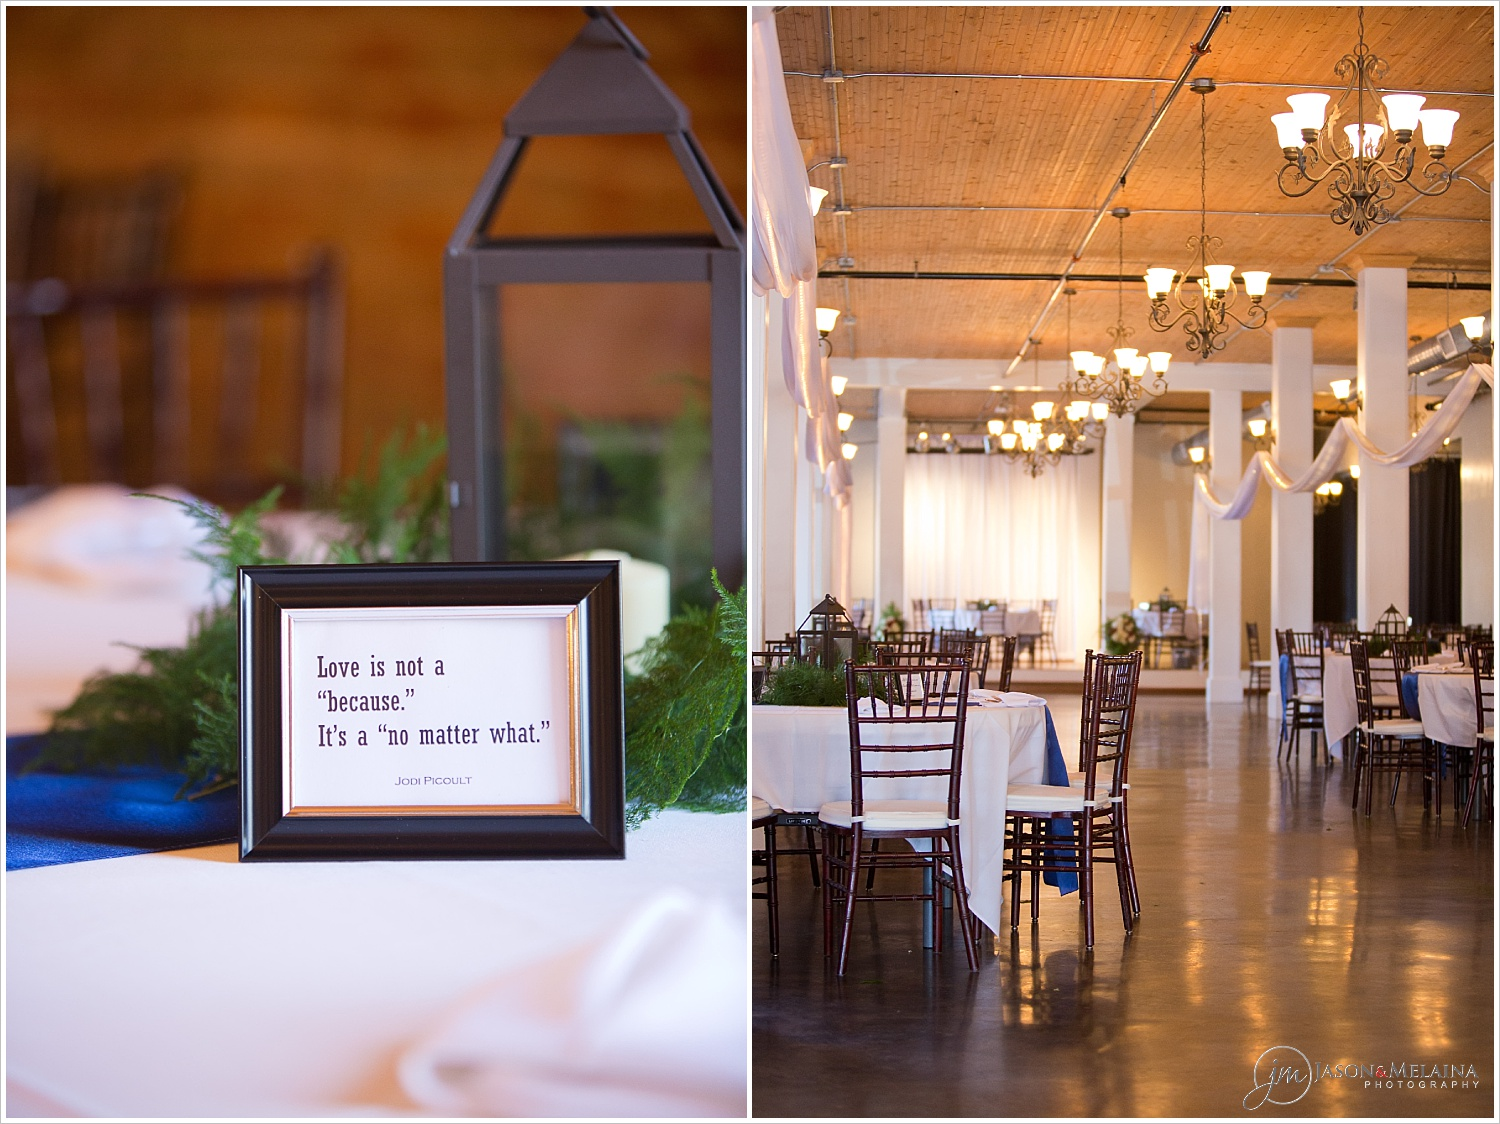 white and navy table decor for a wedding reception inside The Palladium in Waco, Texas